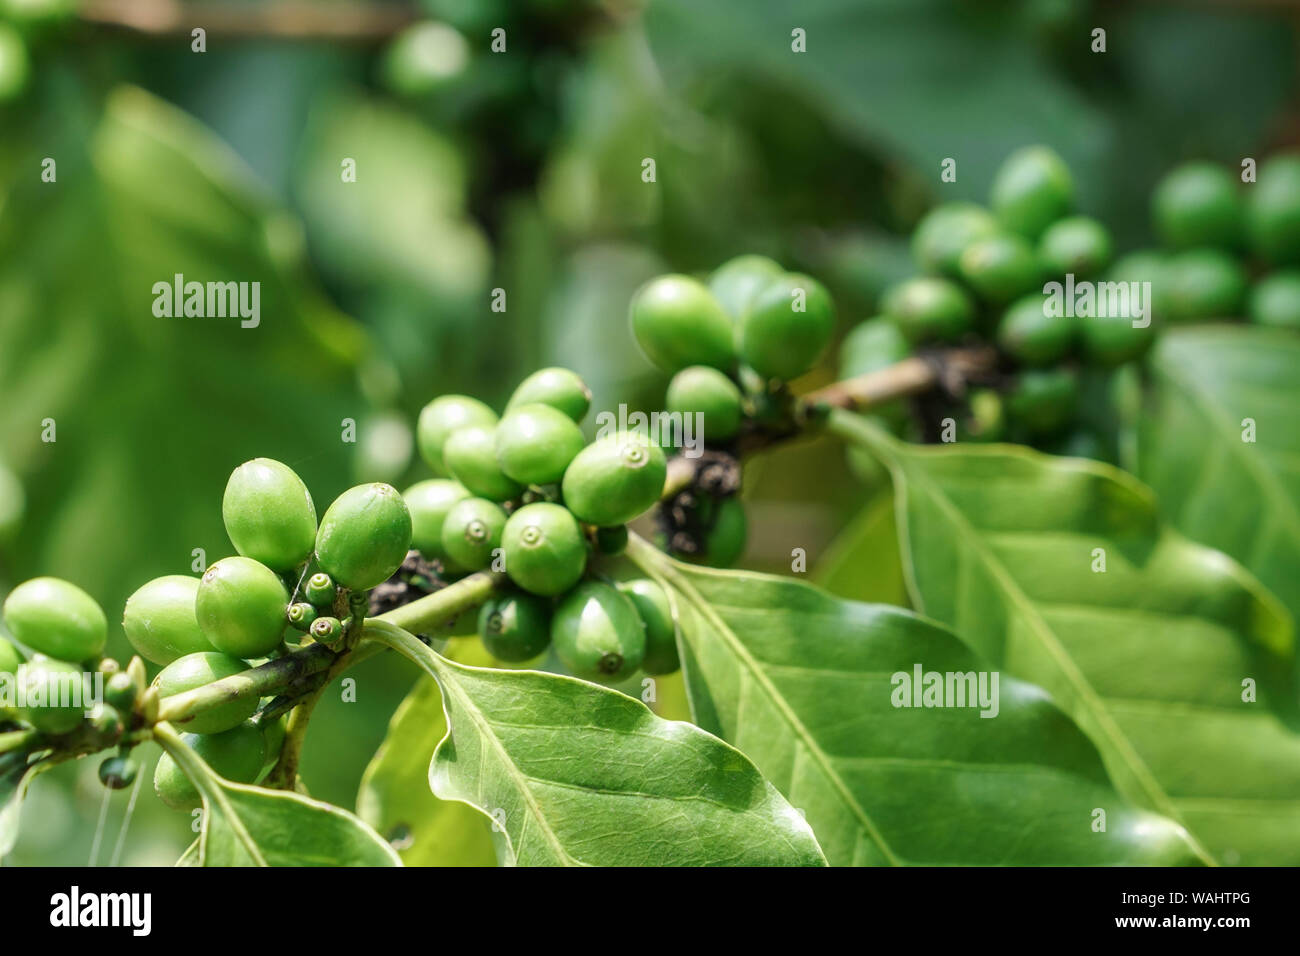 Green Coffee Beans On Tree In The Garden Stock Photo Alamy